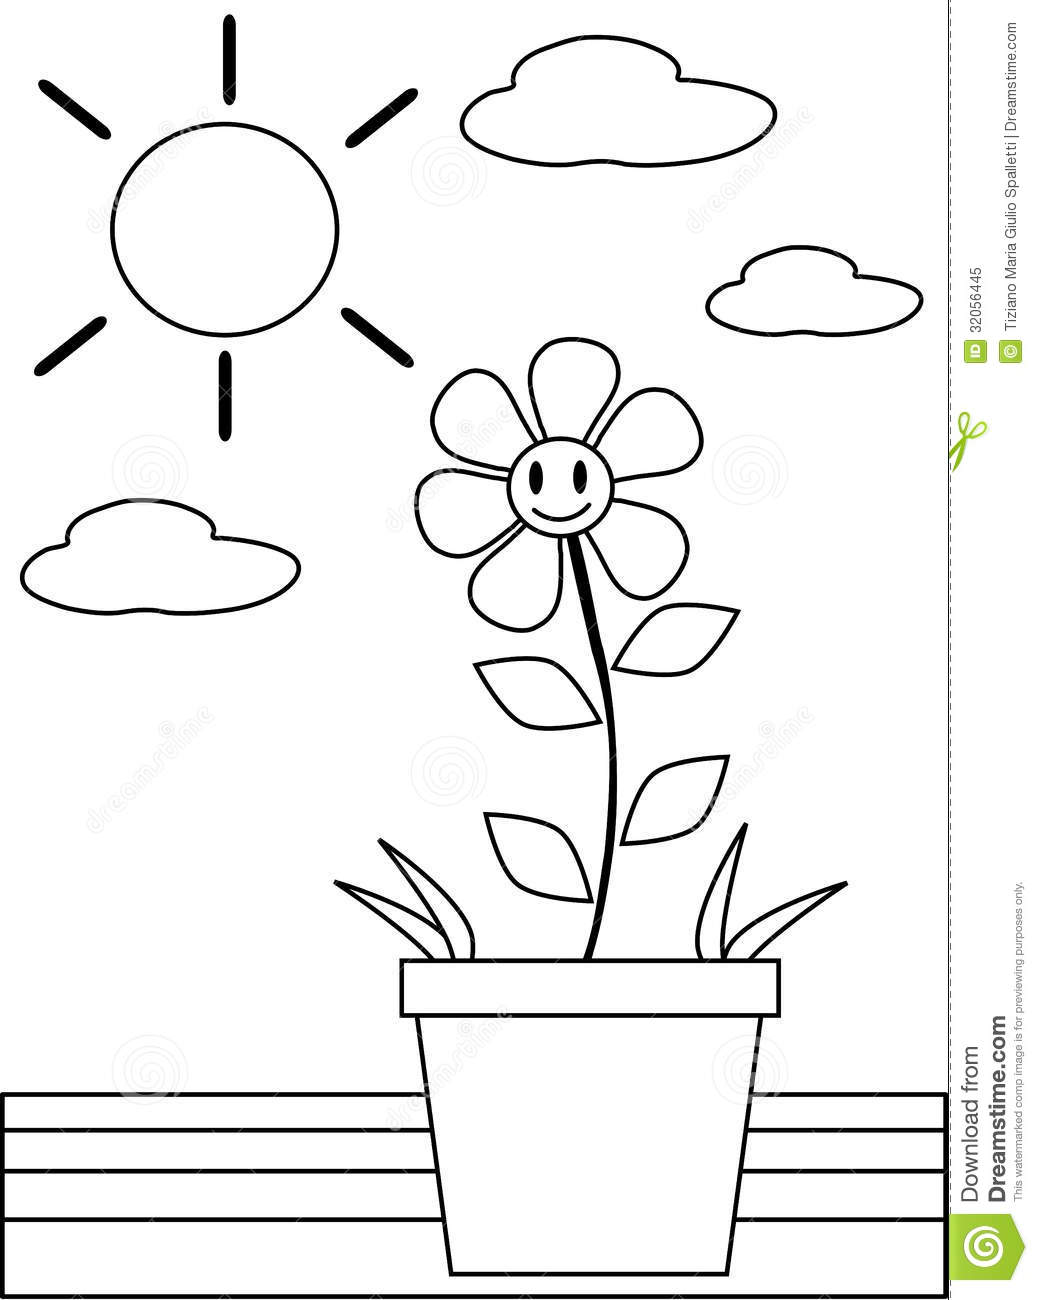 Colorable flower stock vector. Illustration of flora - 32056445